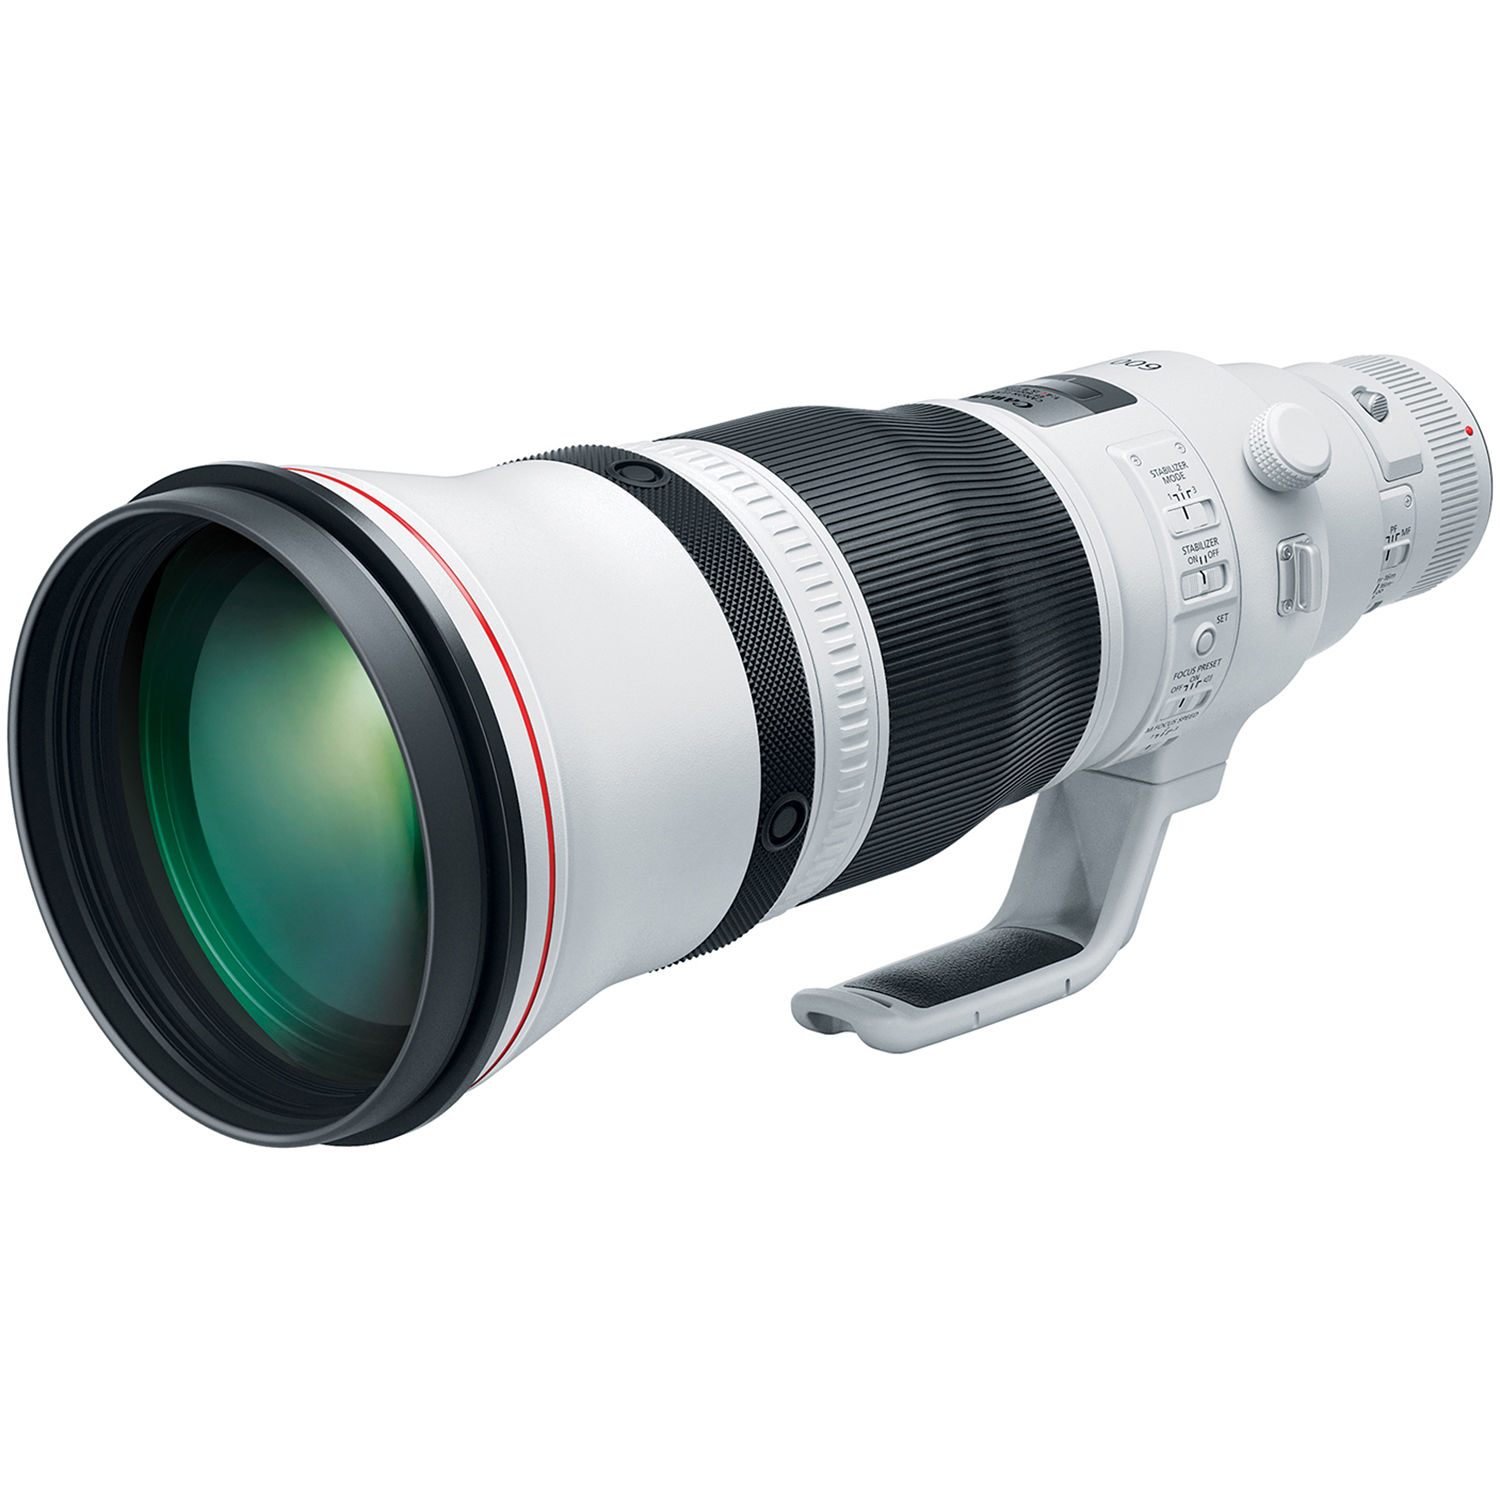 Canon Ef 600Mm F/4L Is Iii Usm Lens 3329C002 B&Amp;H Photo Video